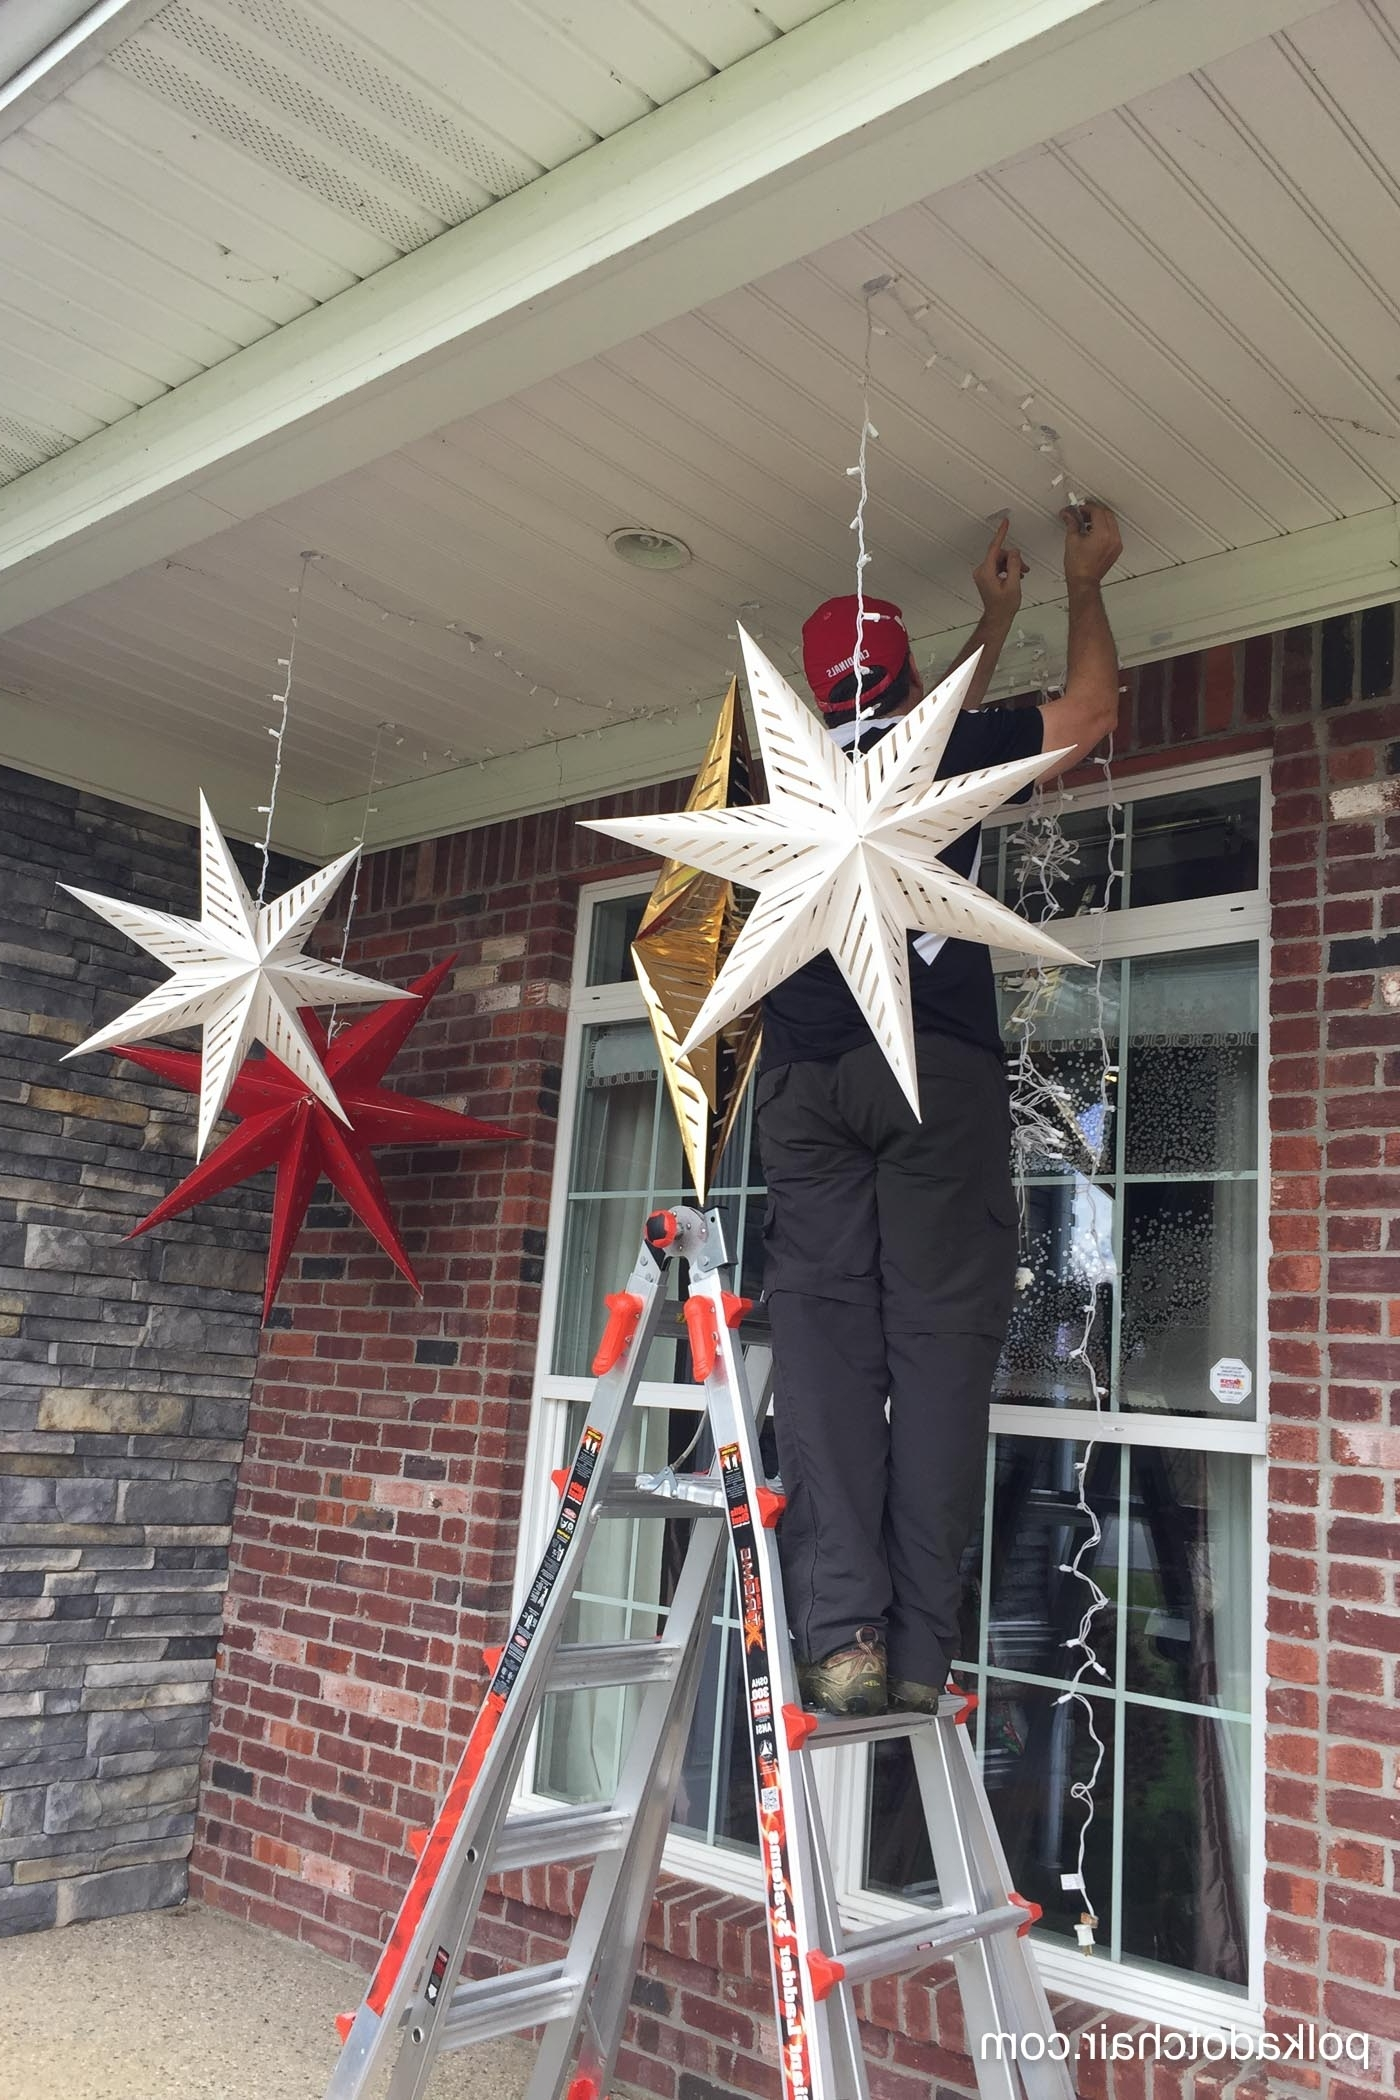 Widely Used Outdoor Hanging Star Lanterns Pertaining To Hanging Star Lanterns; A Christmas Front Porch Decorating Idea – The (View 20 of 20)